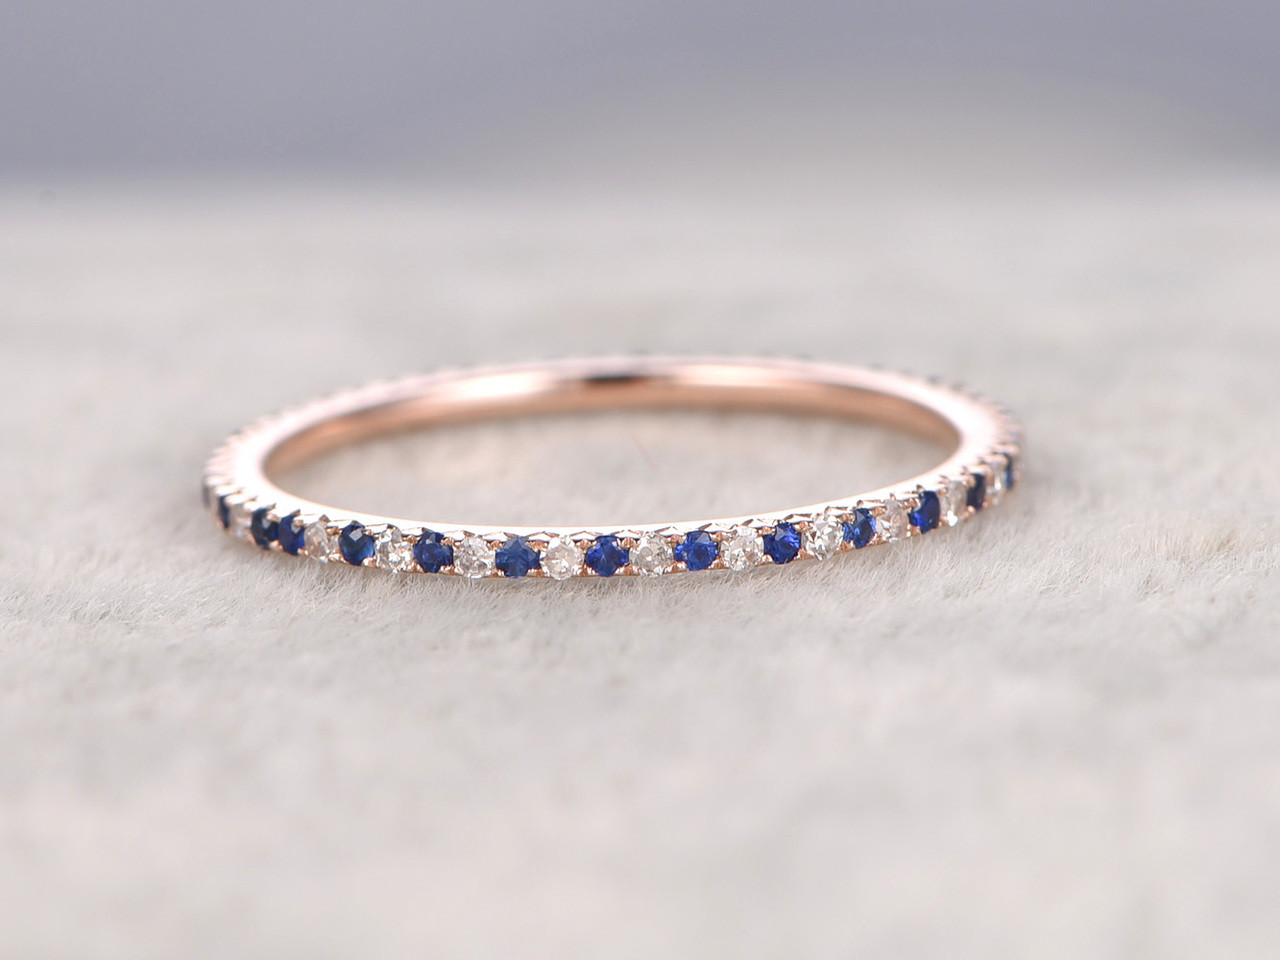 hammered band bands skinny wedding gold with diamonds rose texture thin perfect diamond ring